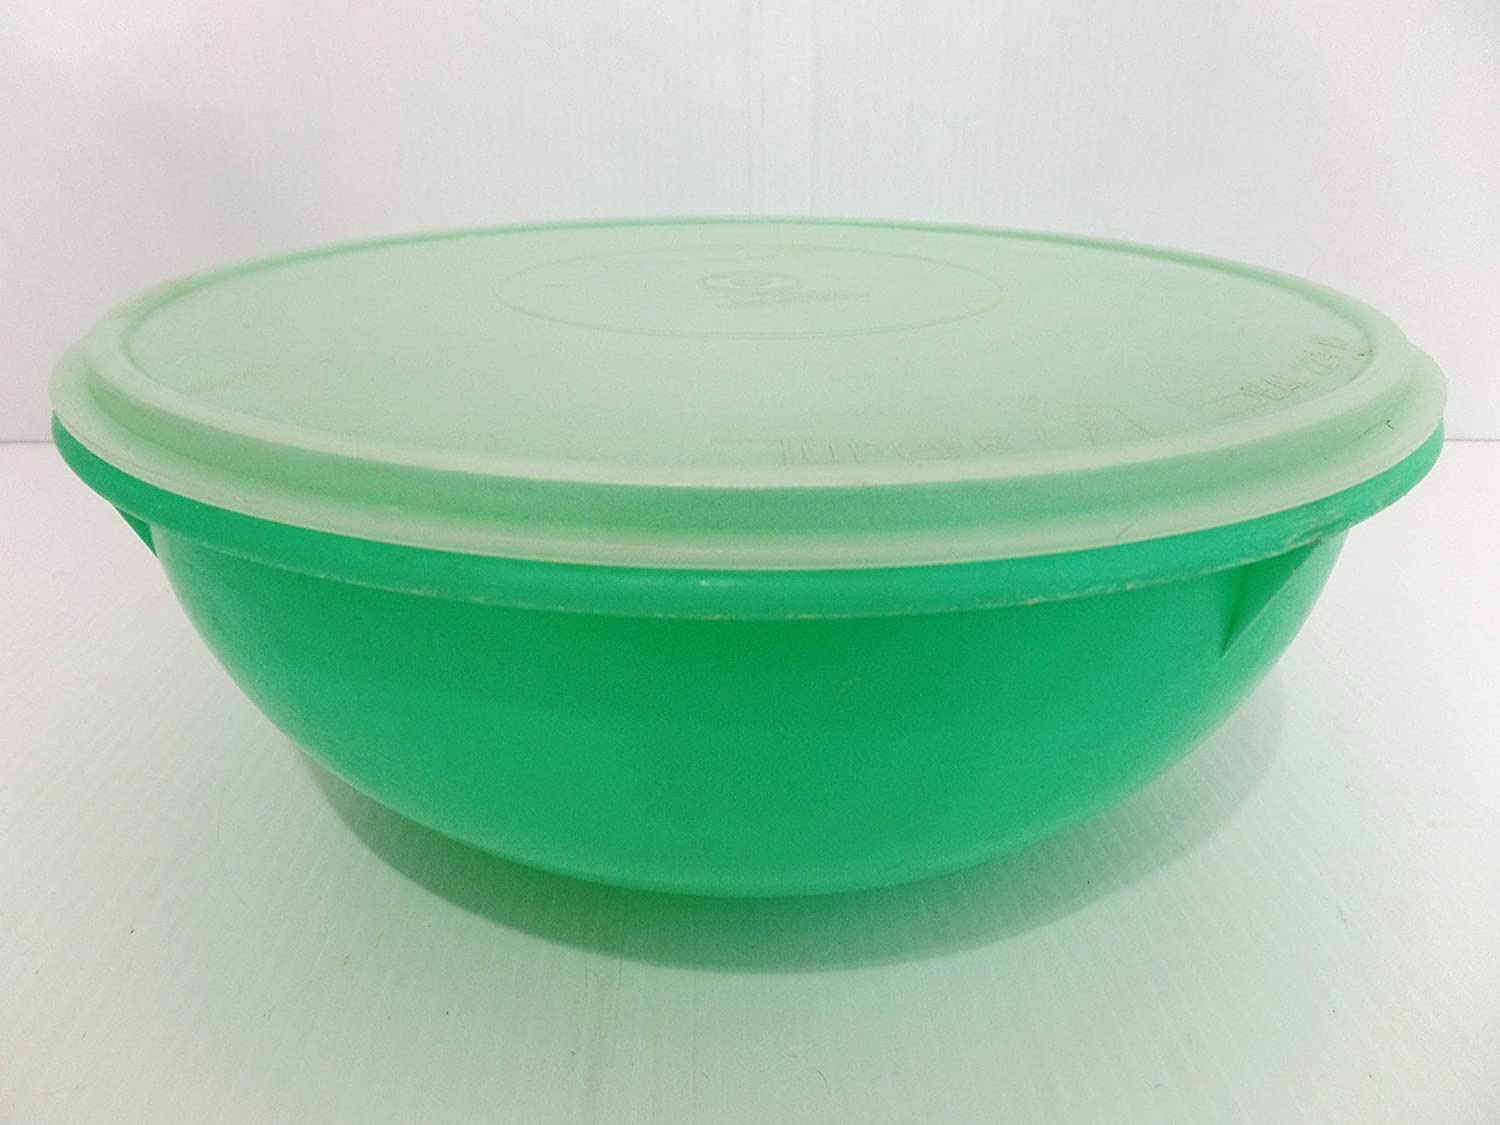 Vintage Tupperware FIX N MIX Bowl, Green Tupperware Bowl